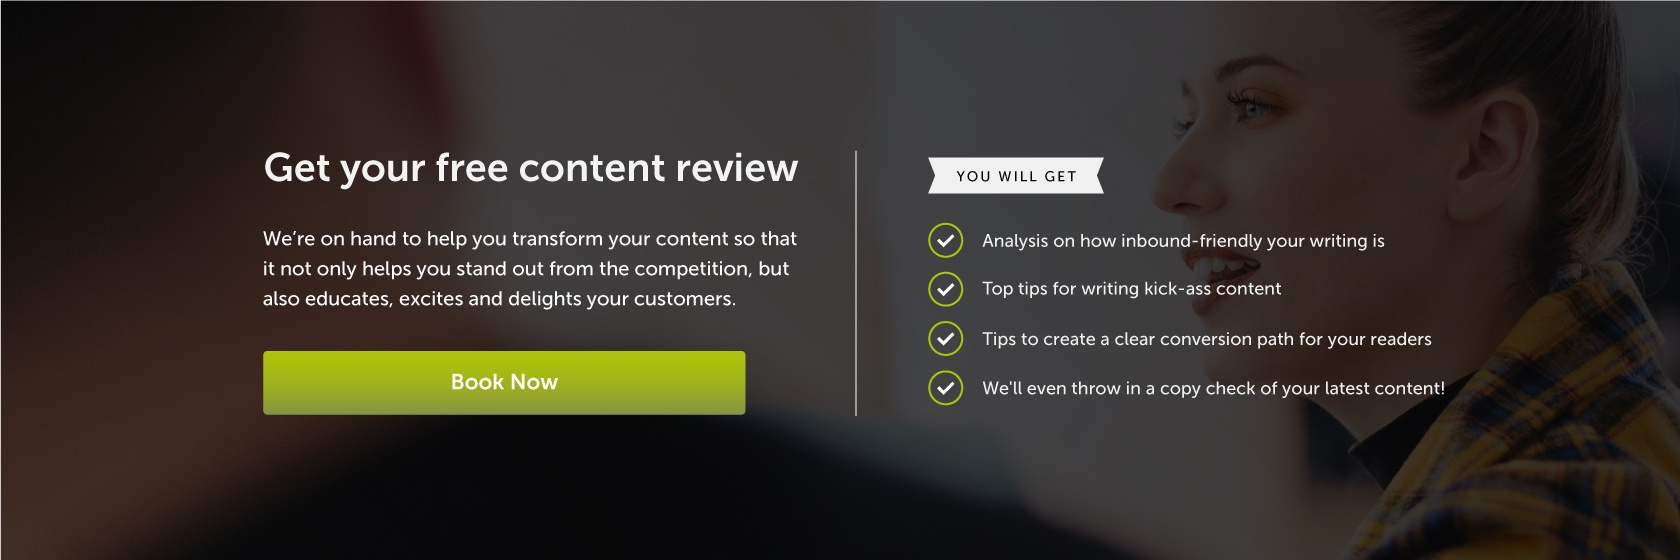 free content review